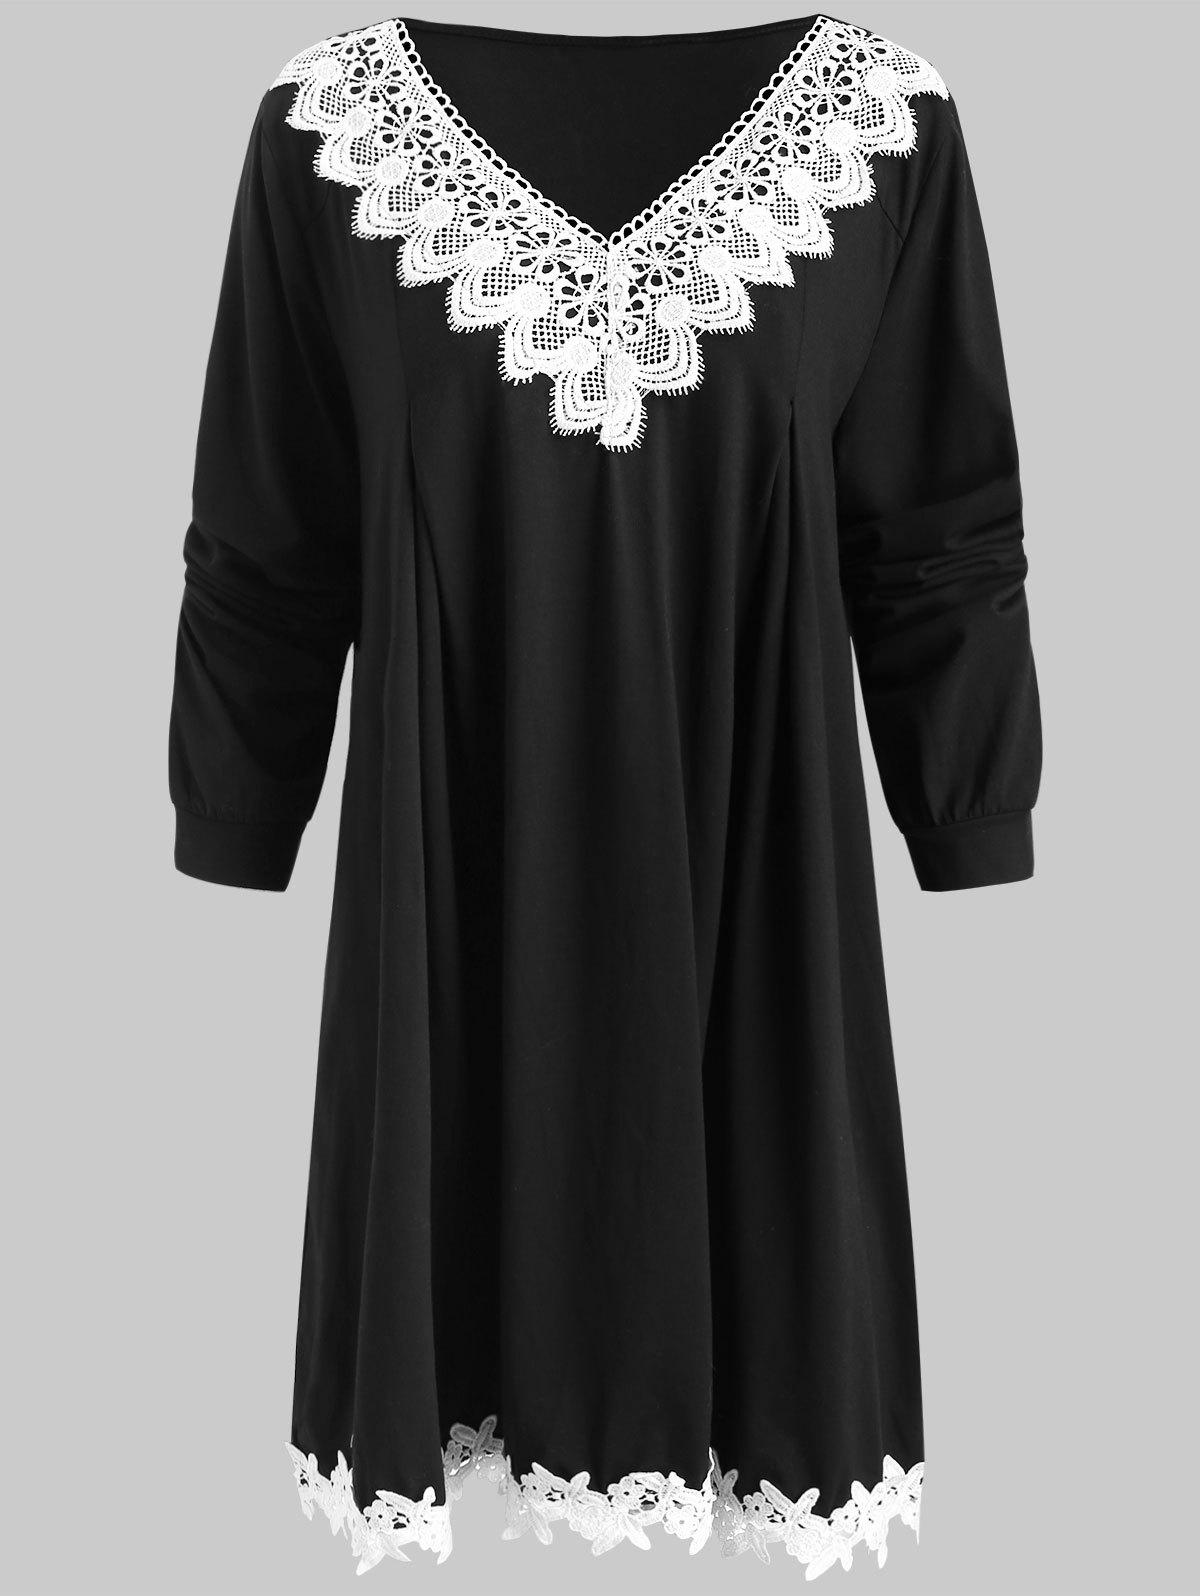 a4760c5d319 56% OFF  Crocheted Trim Long Sleeve Plus Size Dress